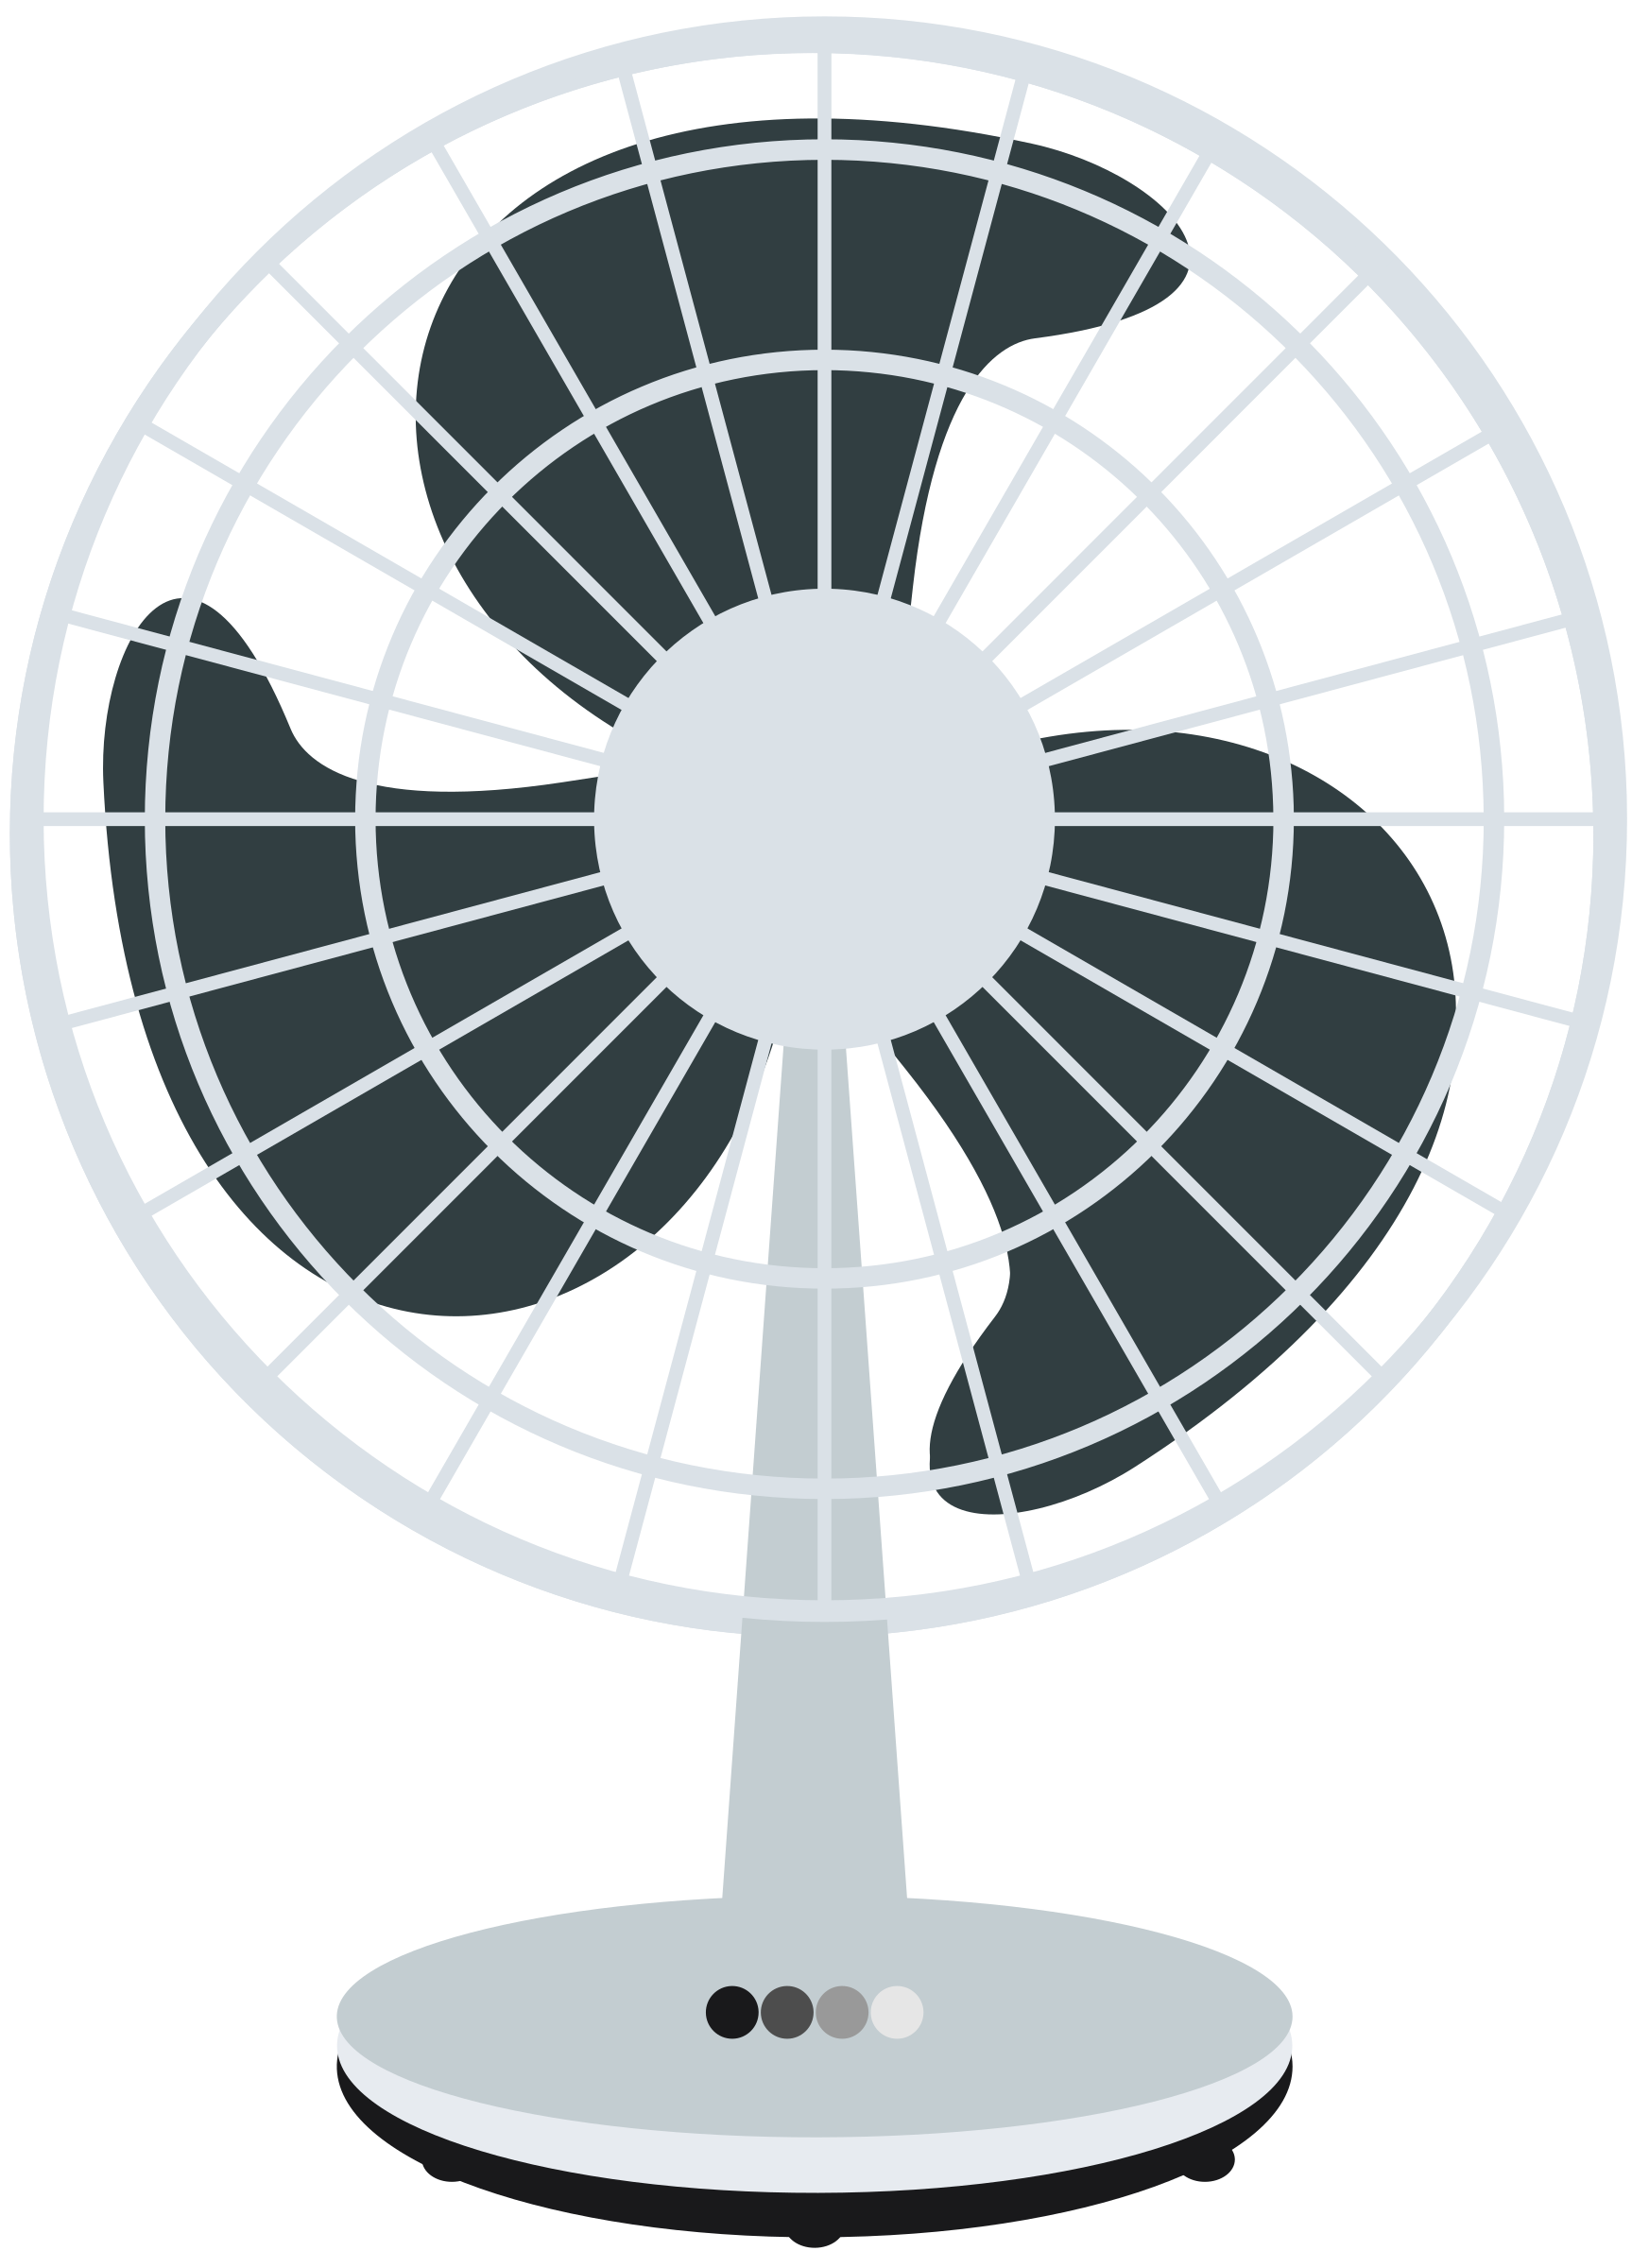 clipart desk fan speed designed rh openclipart org fun clip art letters fun clip art shapes